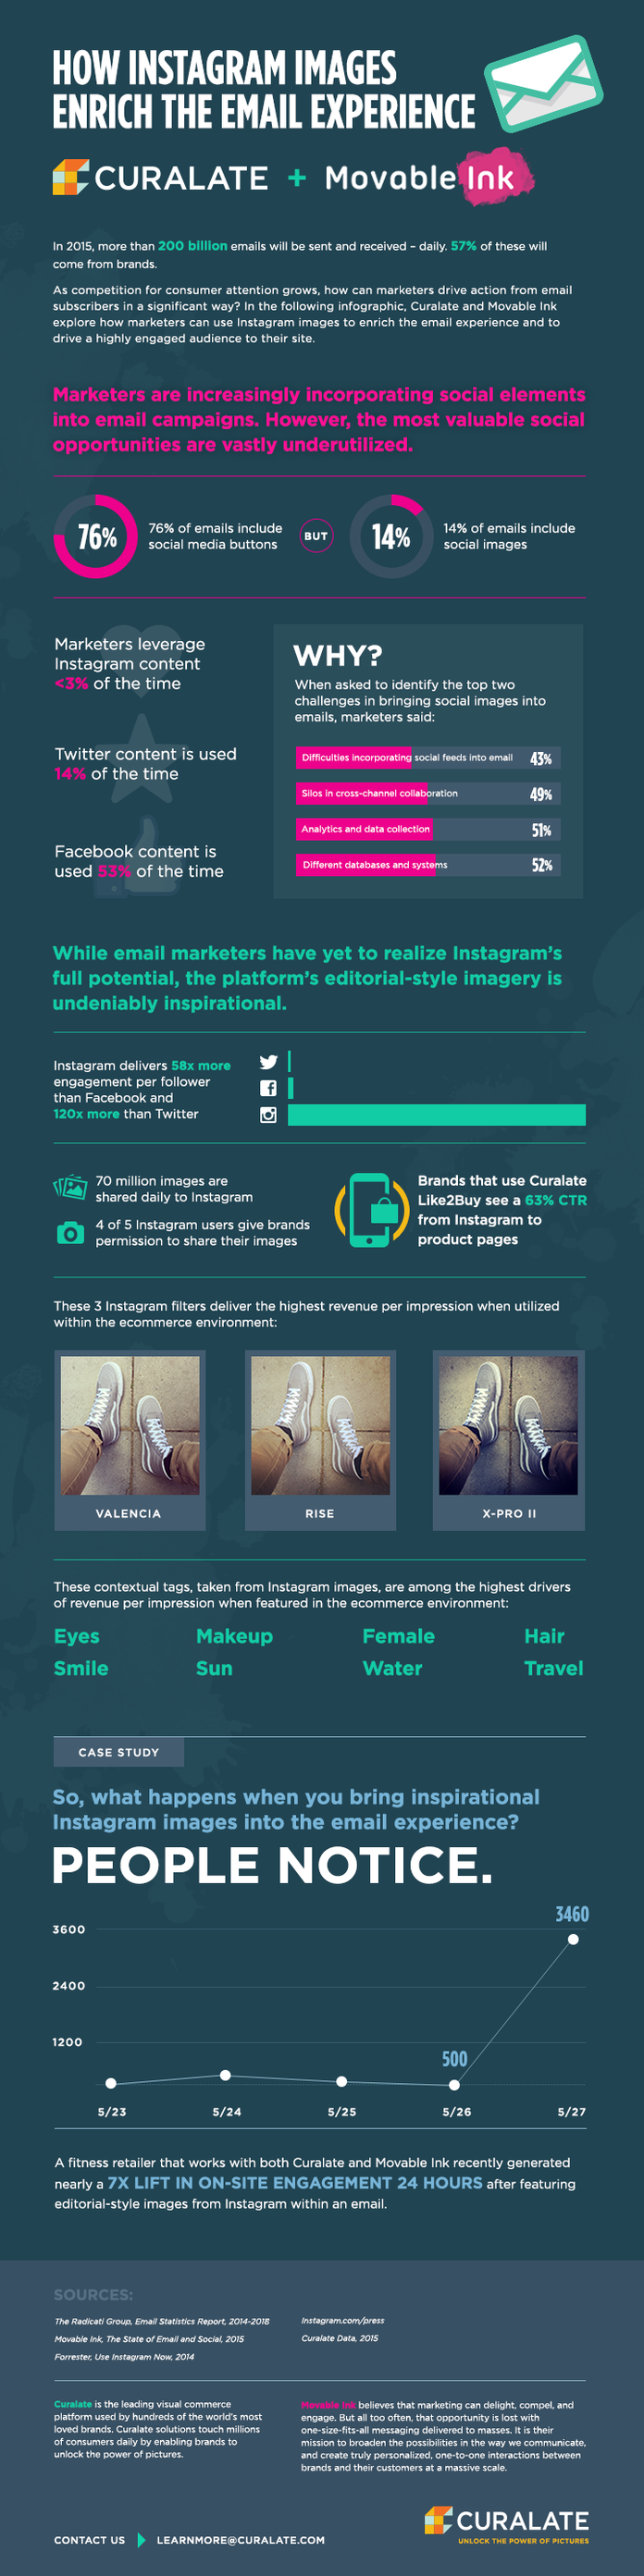 email and instagram infographic